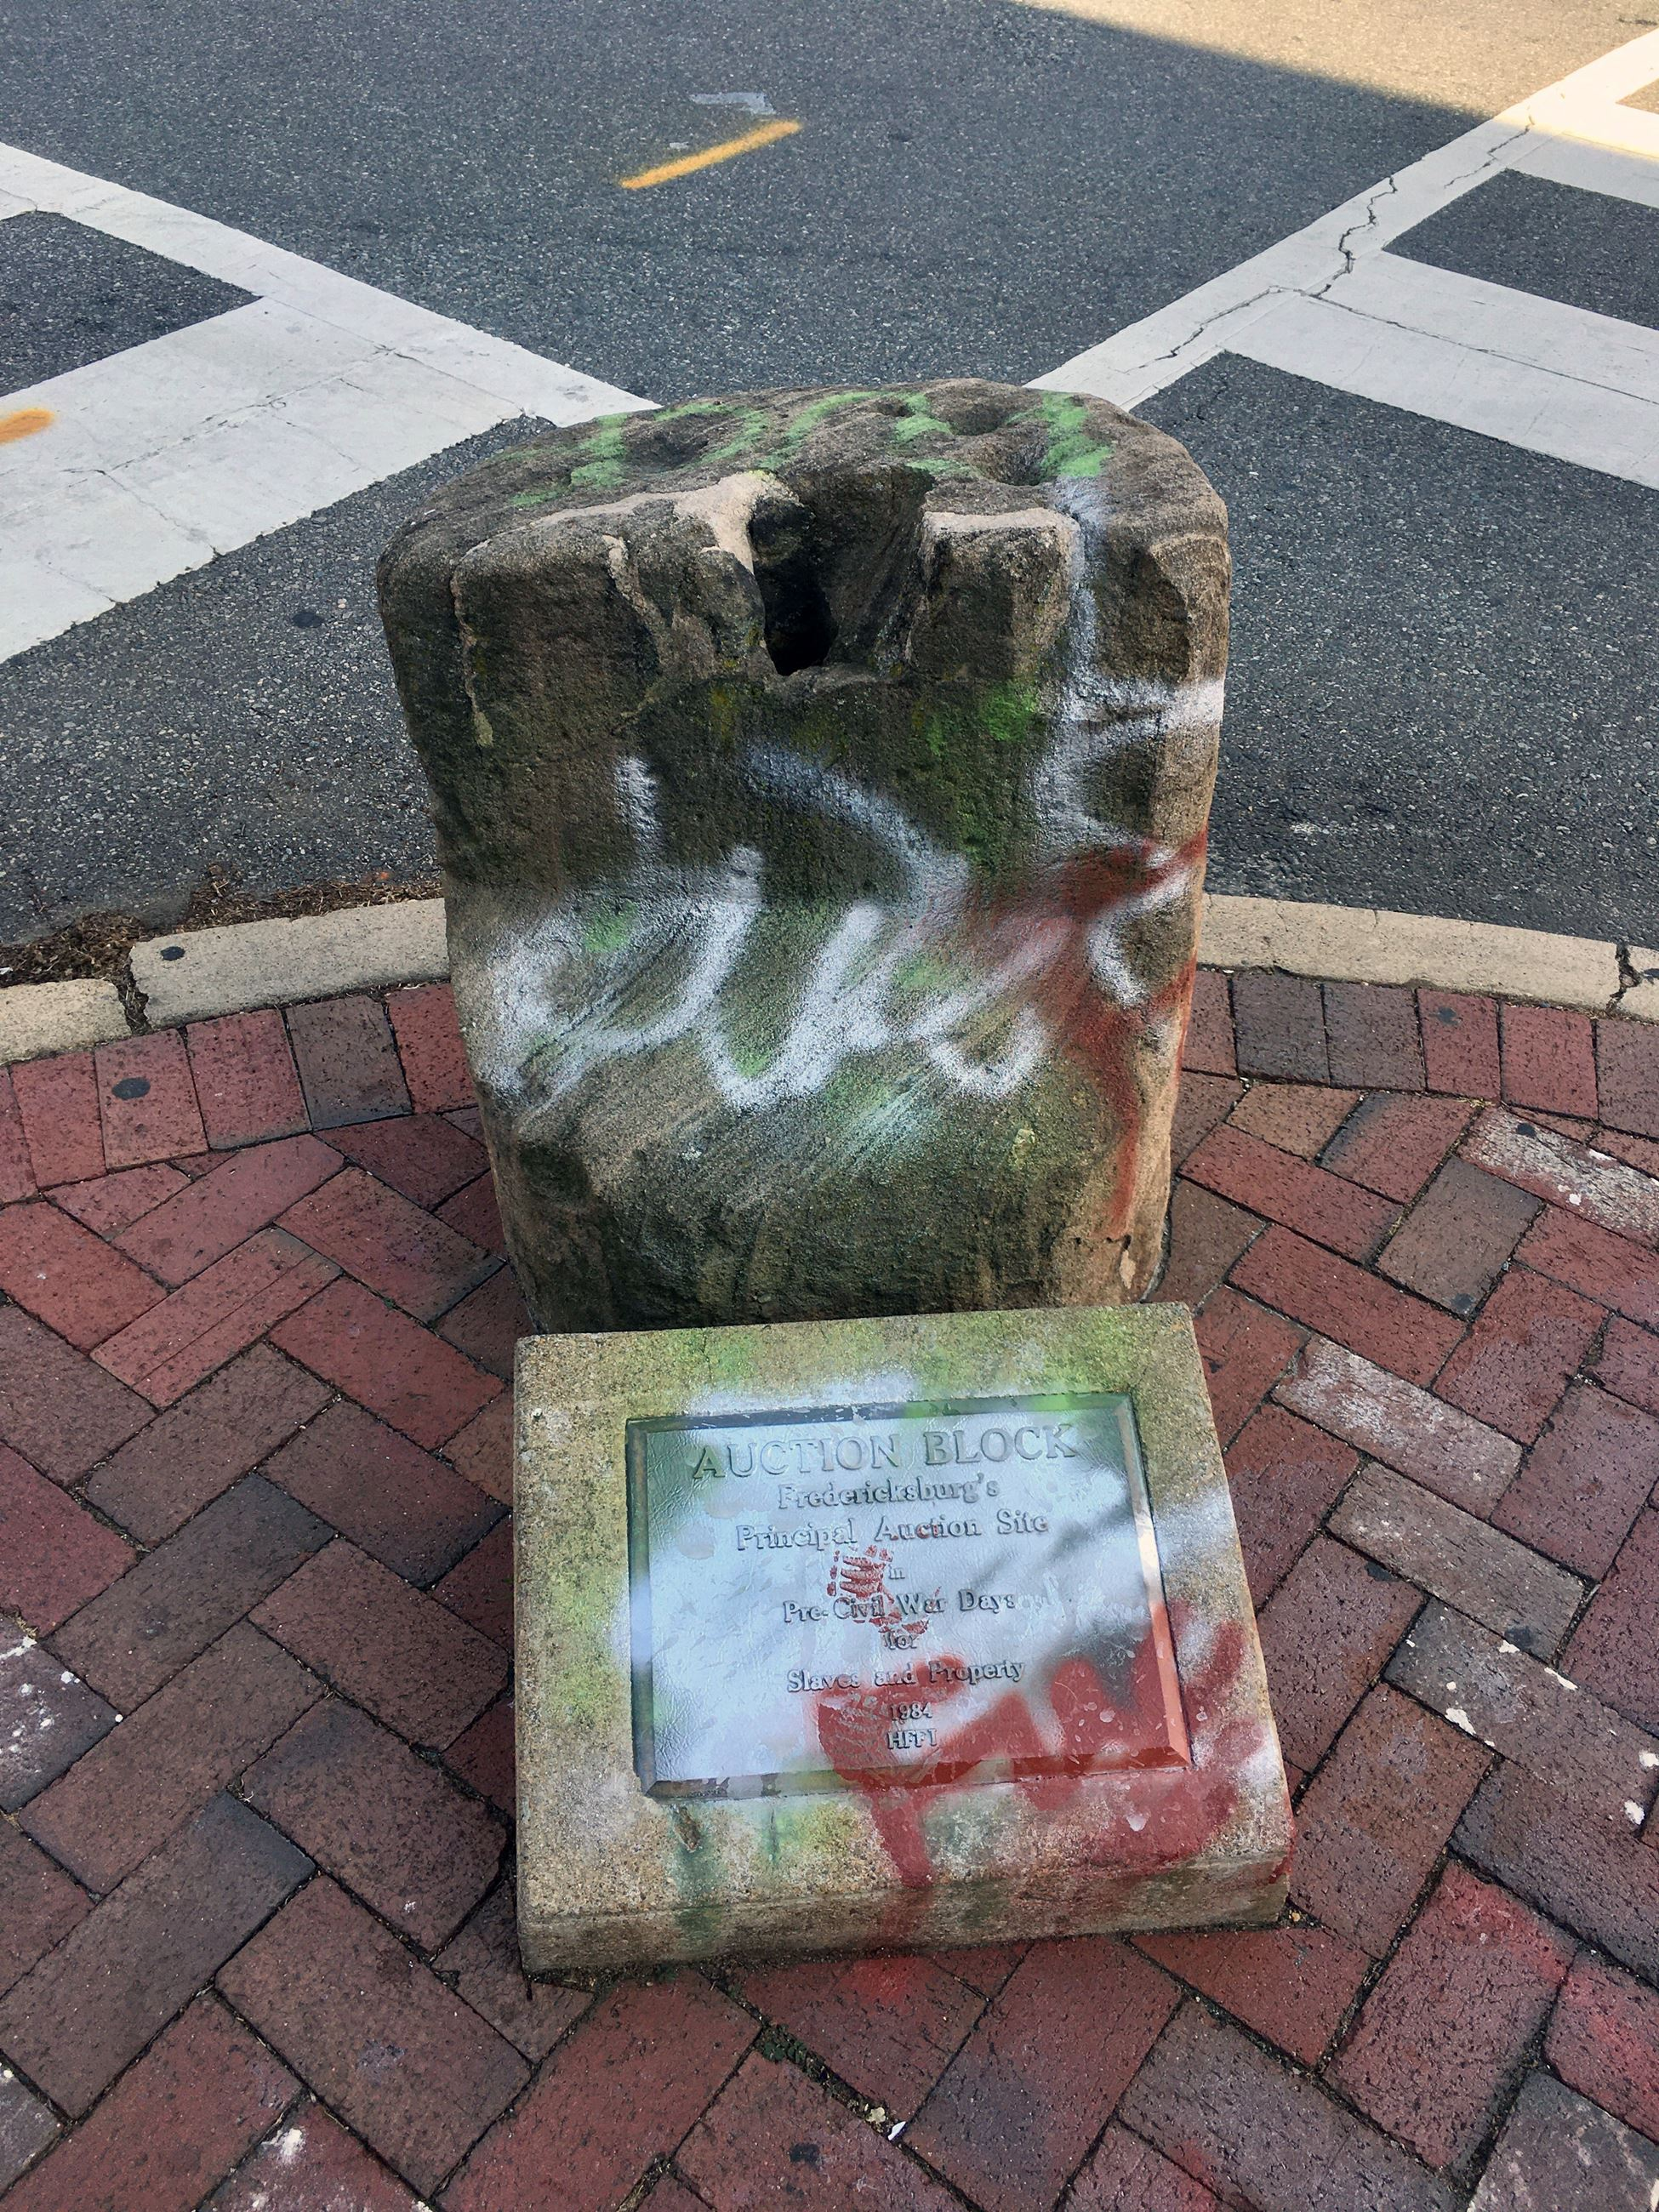 Auction Block w graffiti 4 - credit COF